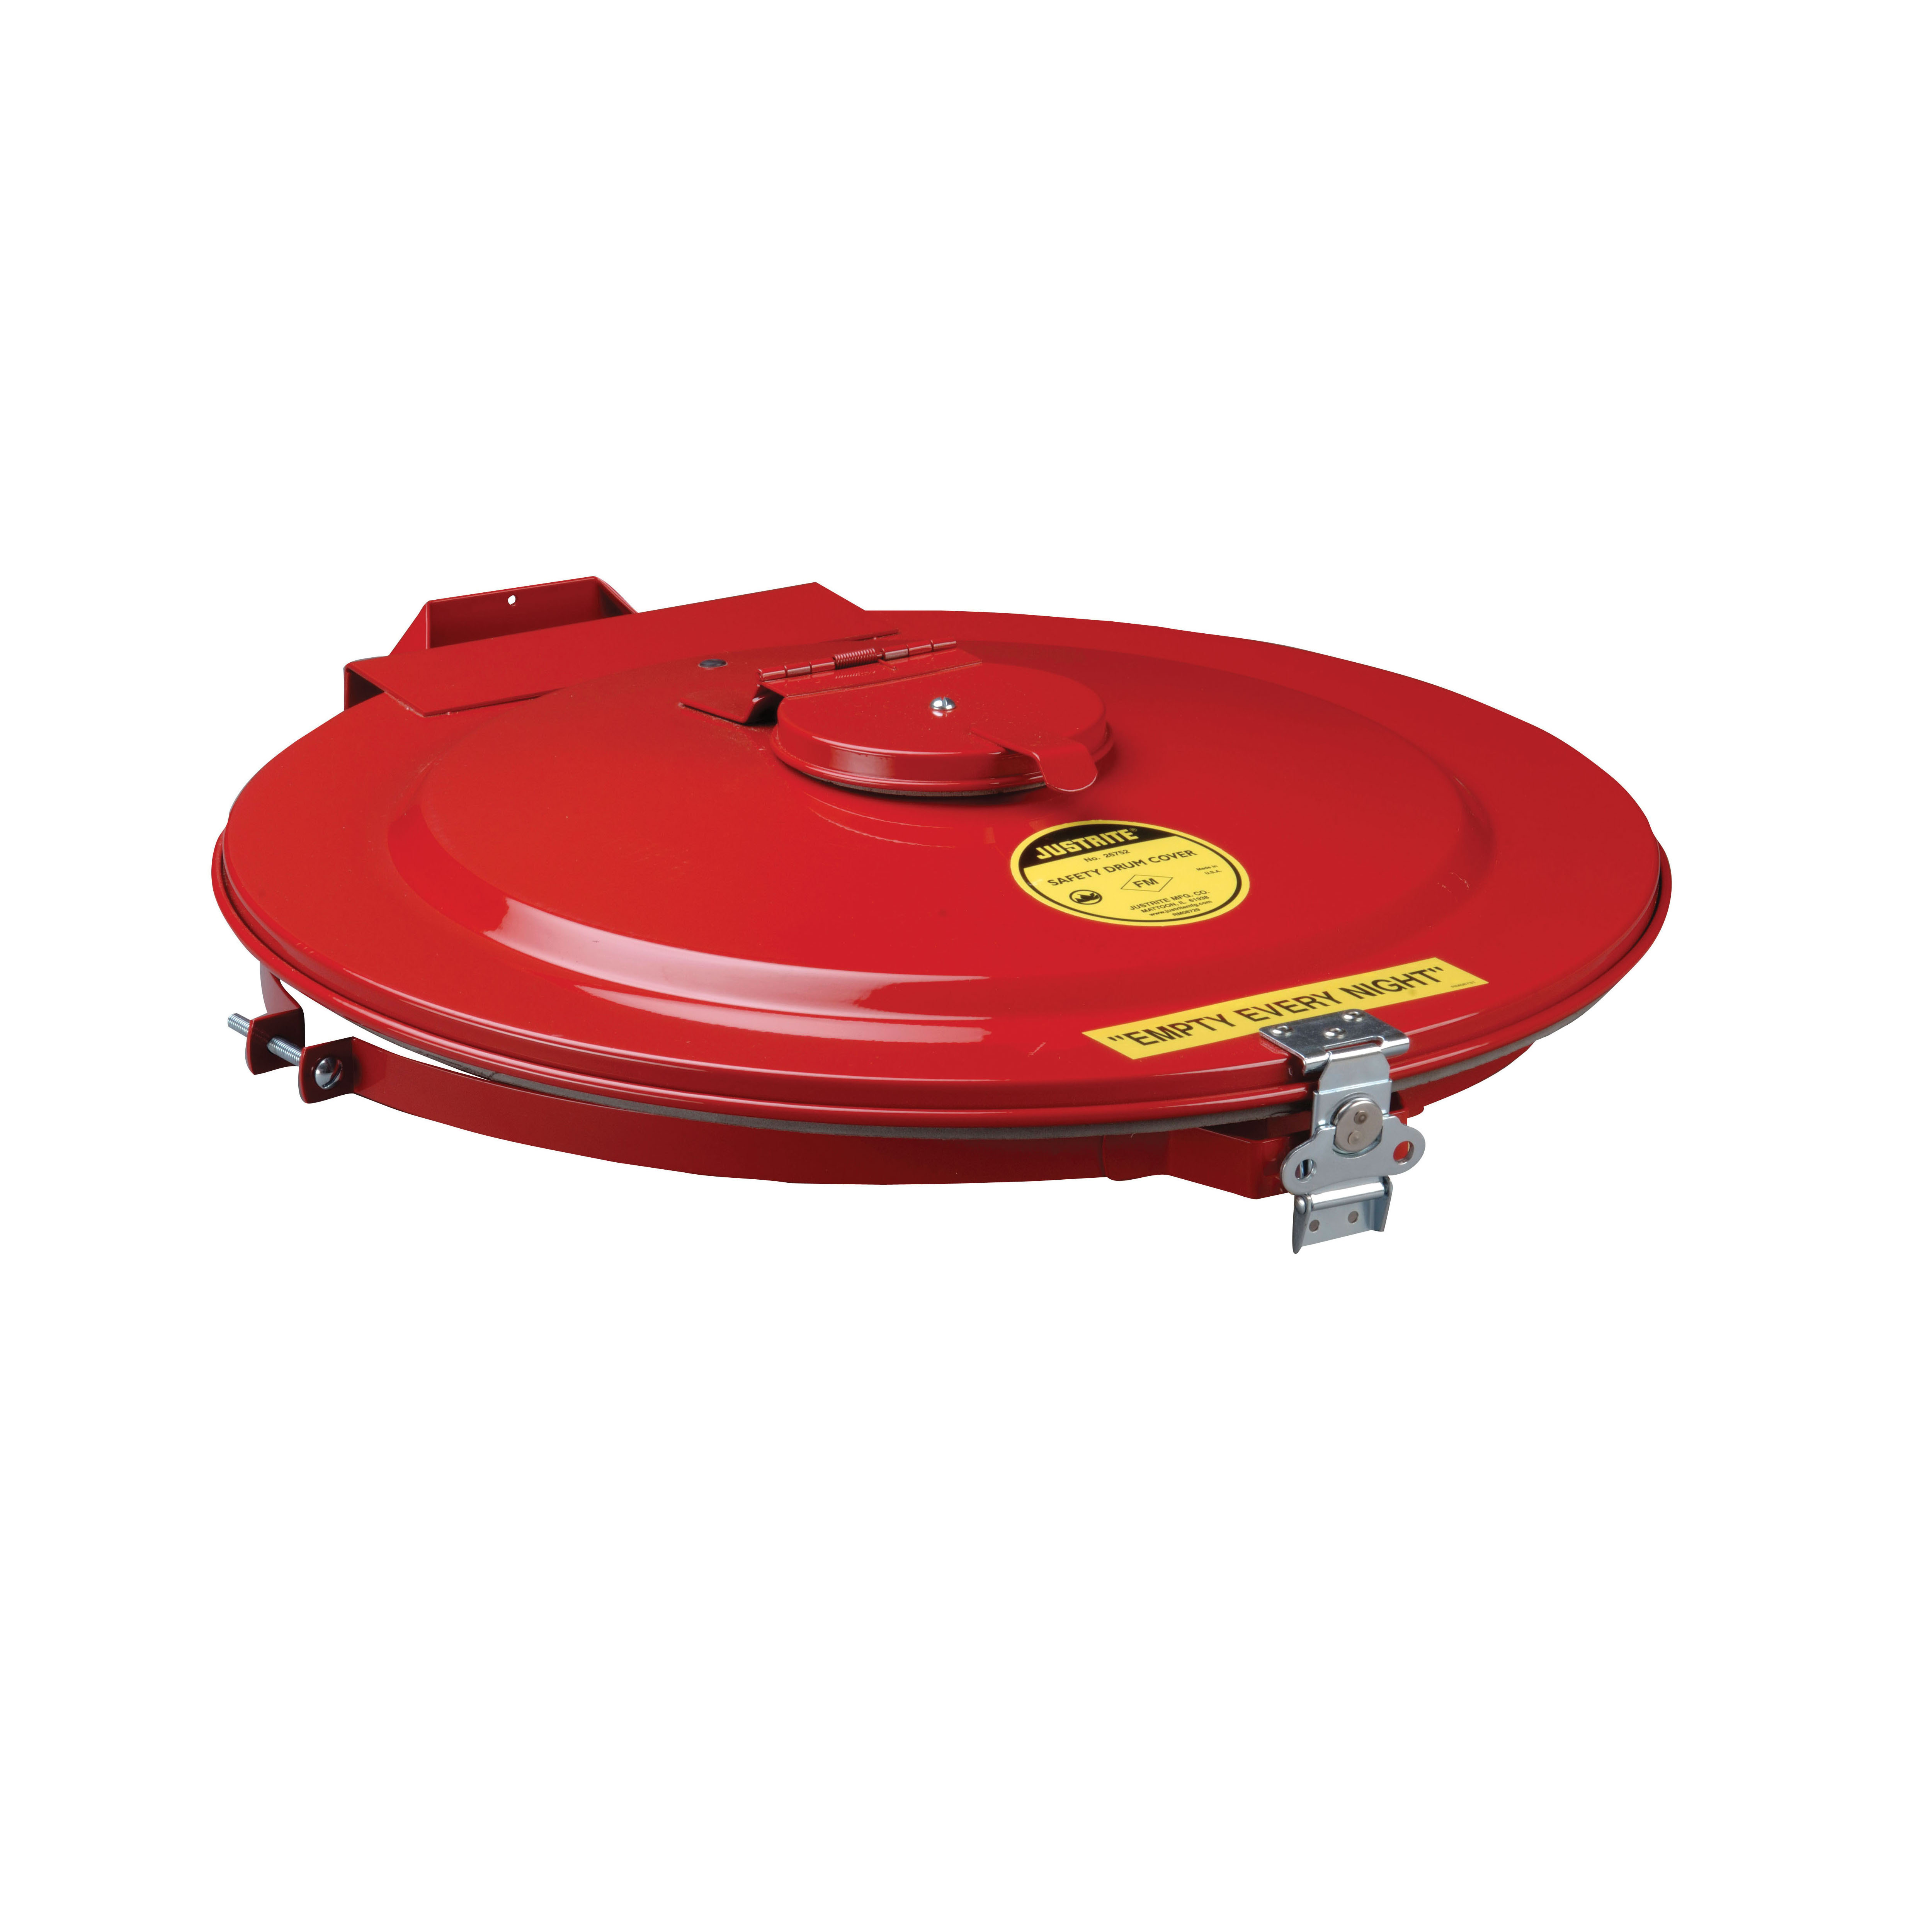 Justrite® VaporTrap™ 26754 Manual Close Safety Drum Cover With Gasket and Port, For Use With 55 gal Drums, Steel, Red